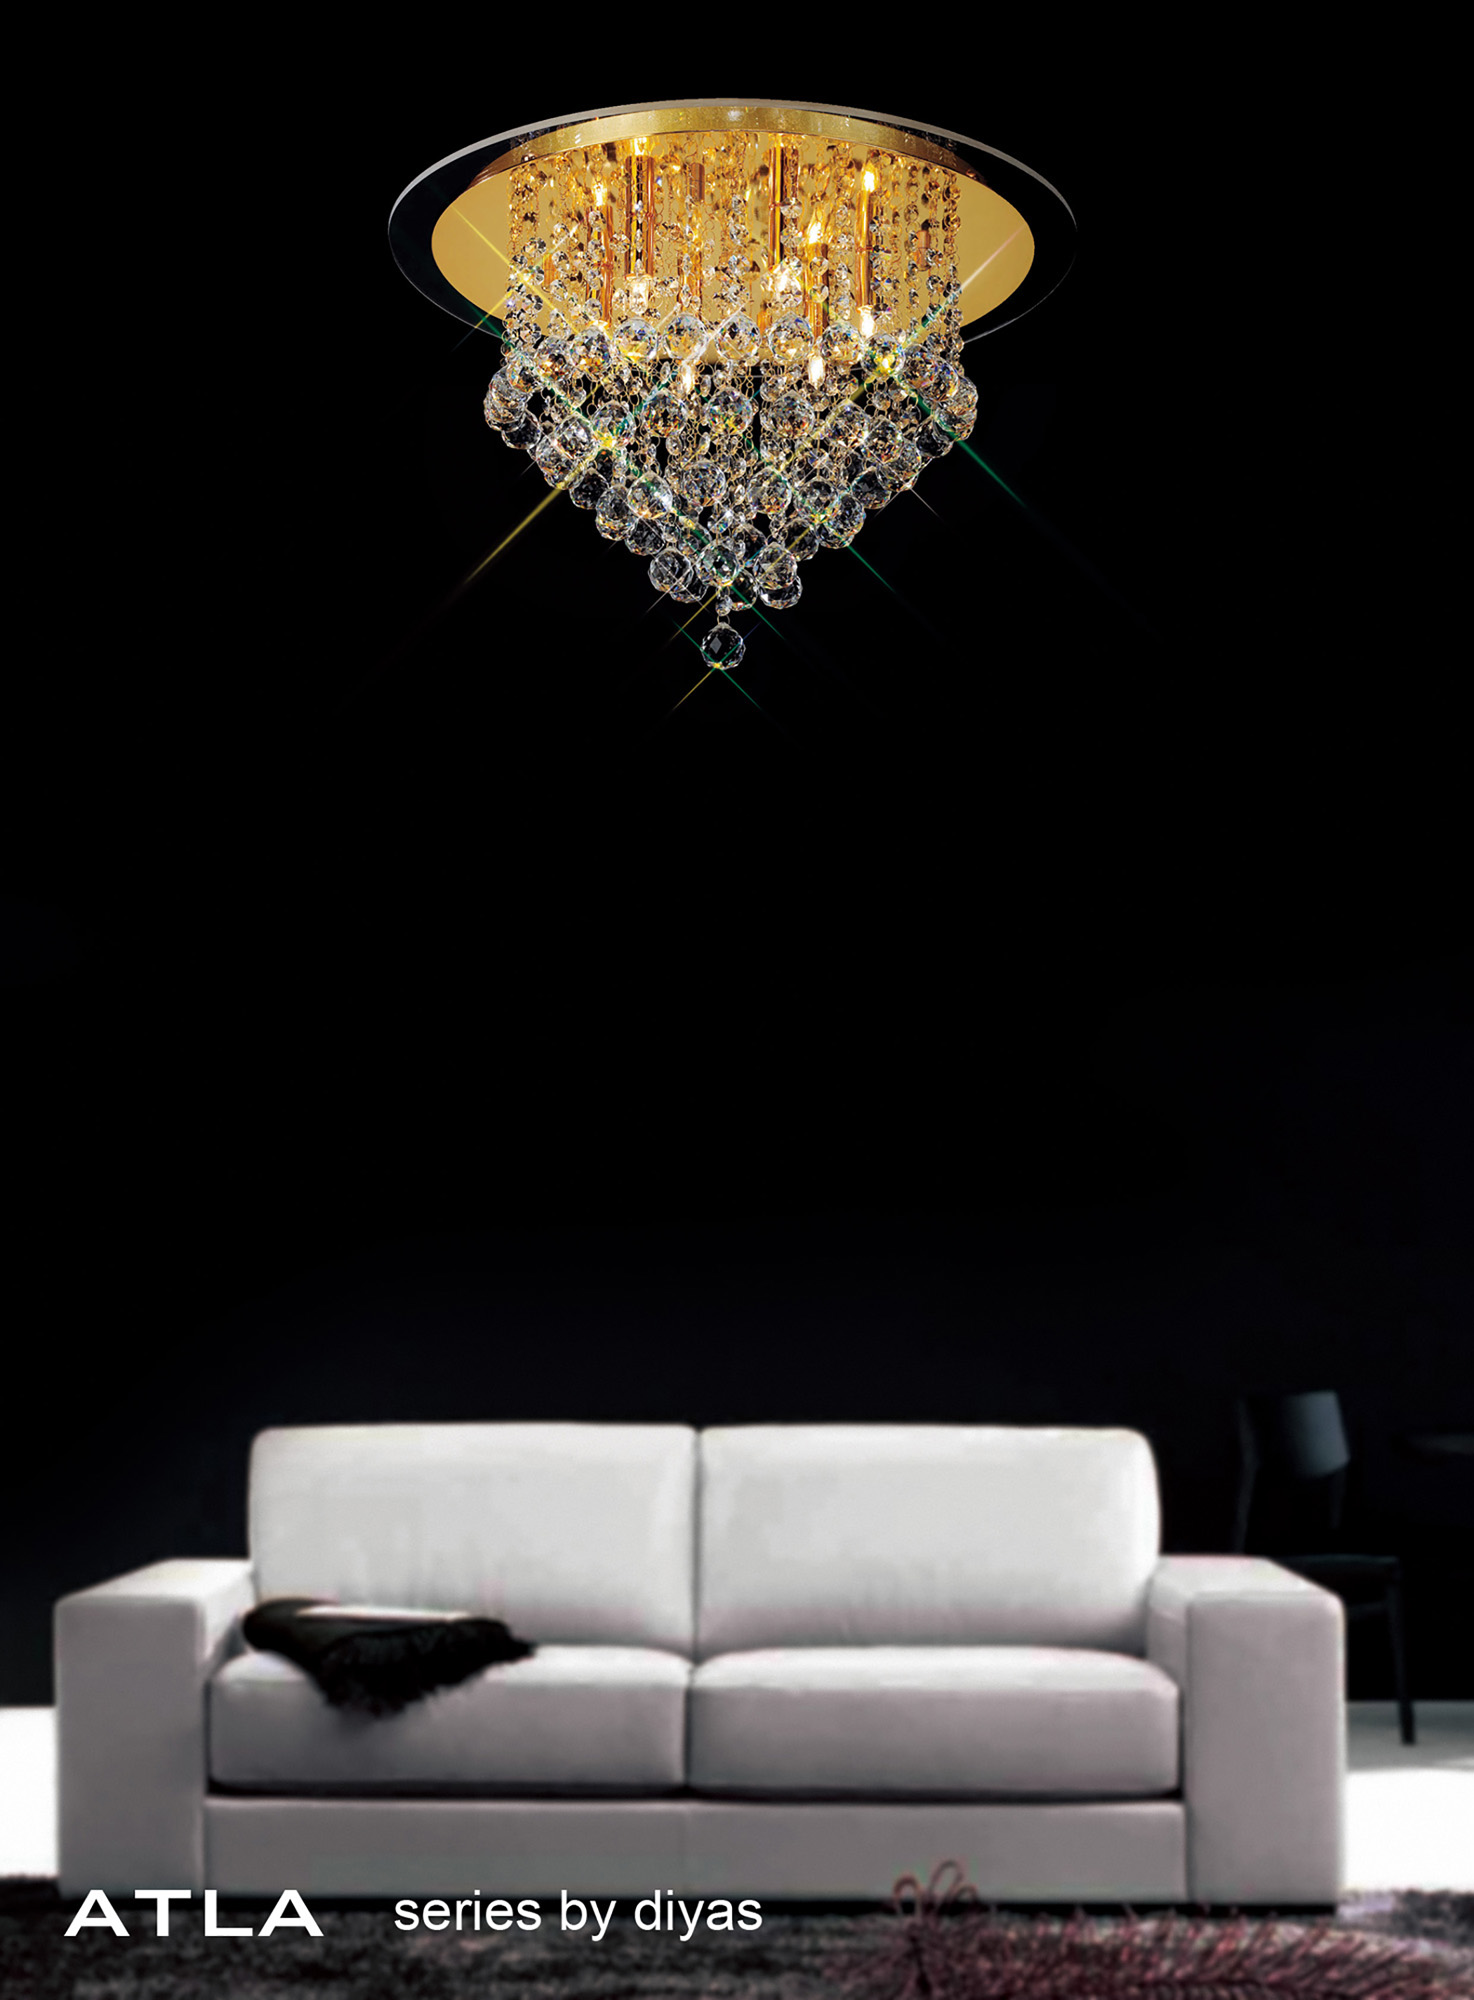 Atla Crystal Ceiling Lights Diyas Contemporary Crystal Ceiling Lights